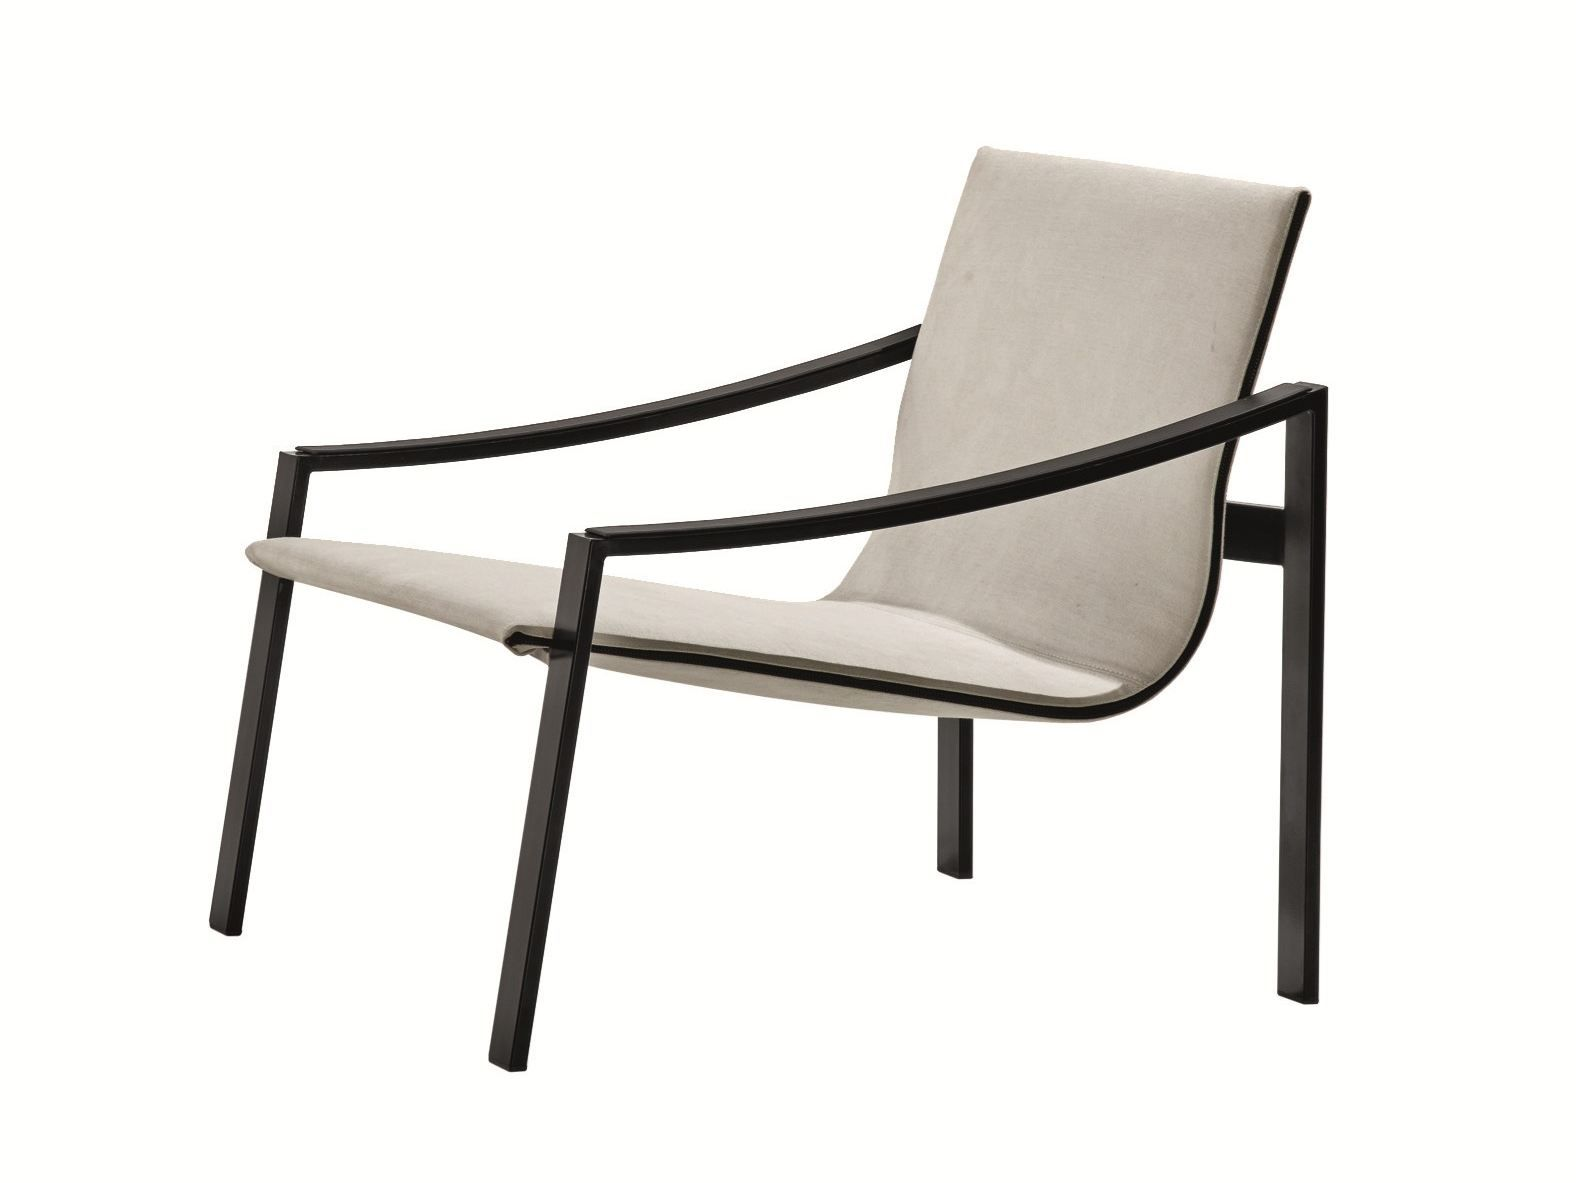 Metal Armchair With Armrests ALLURE   MOLTENI ...